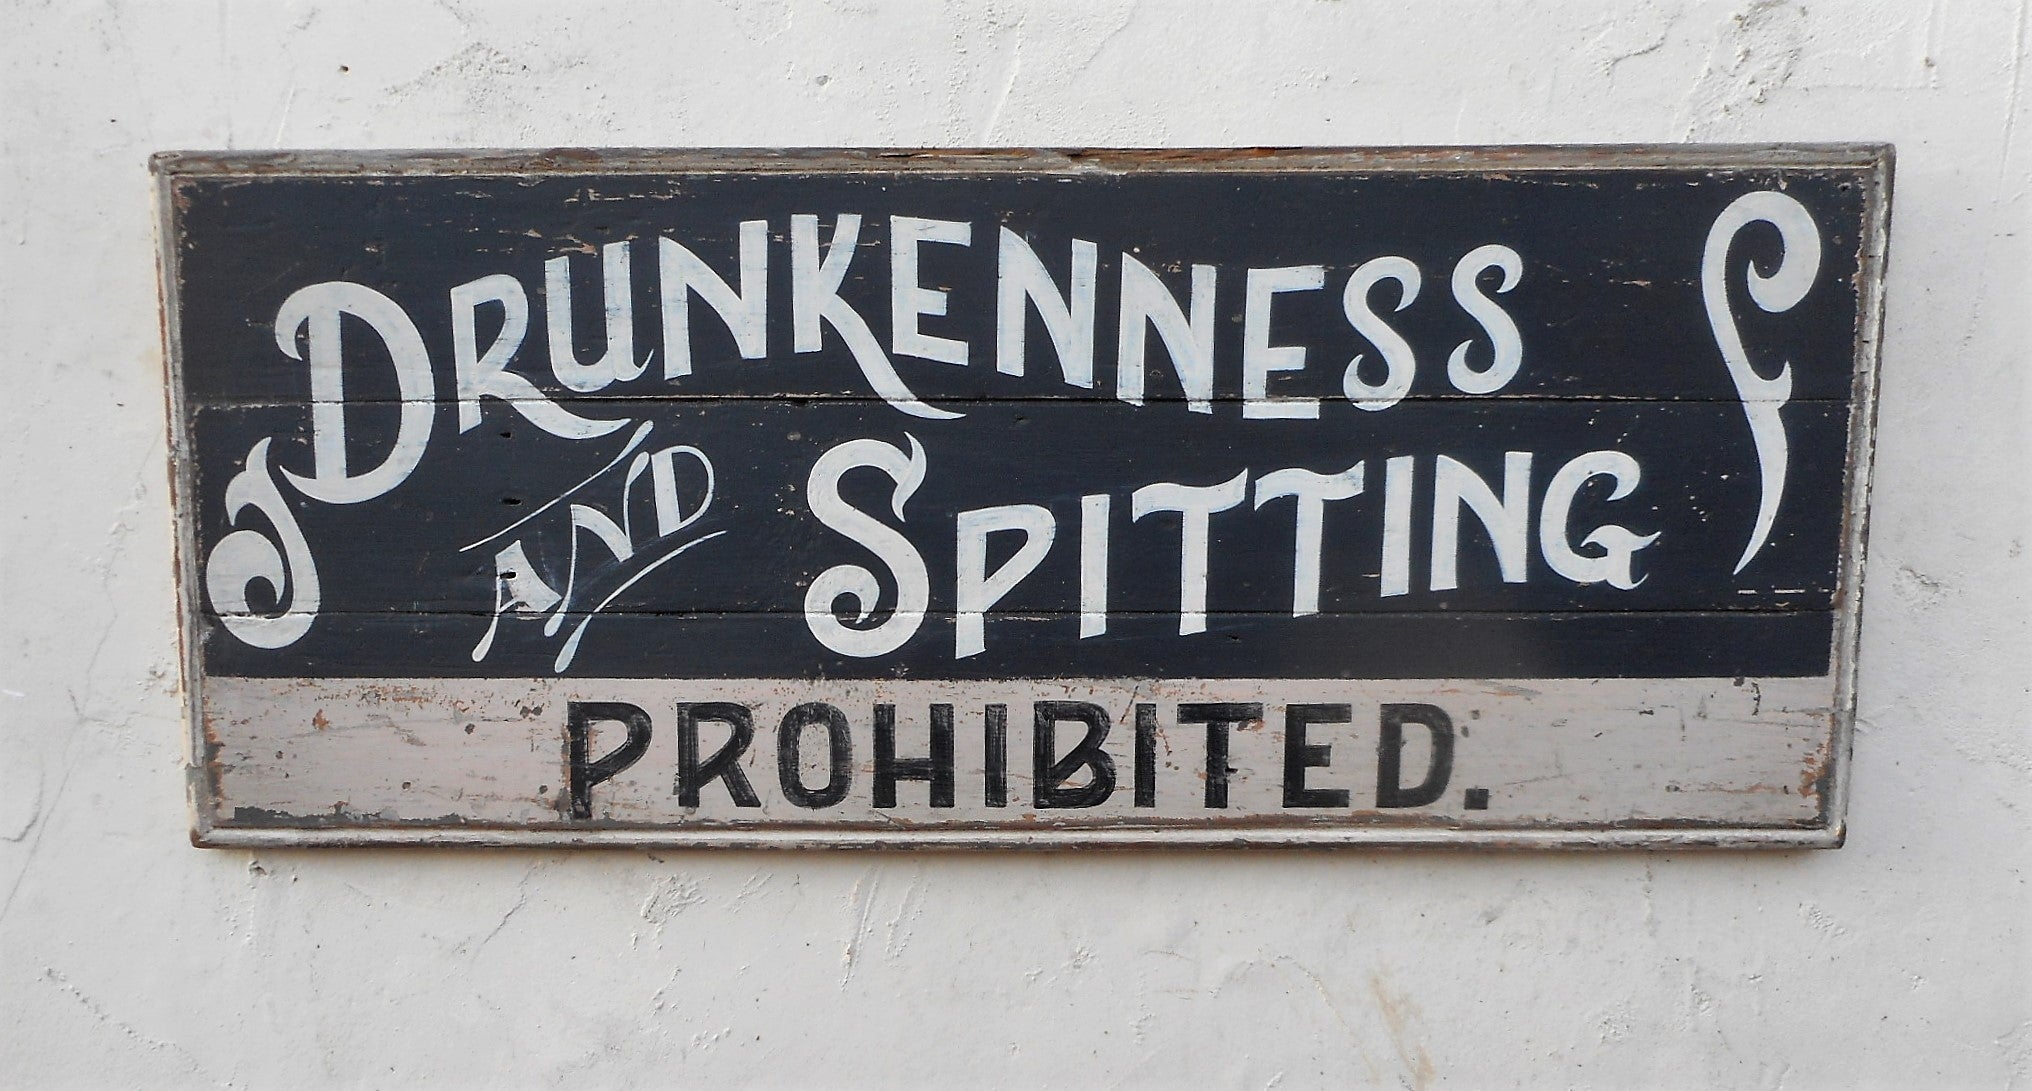 Drunkenness and Spitting Prohibited